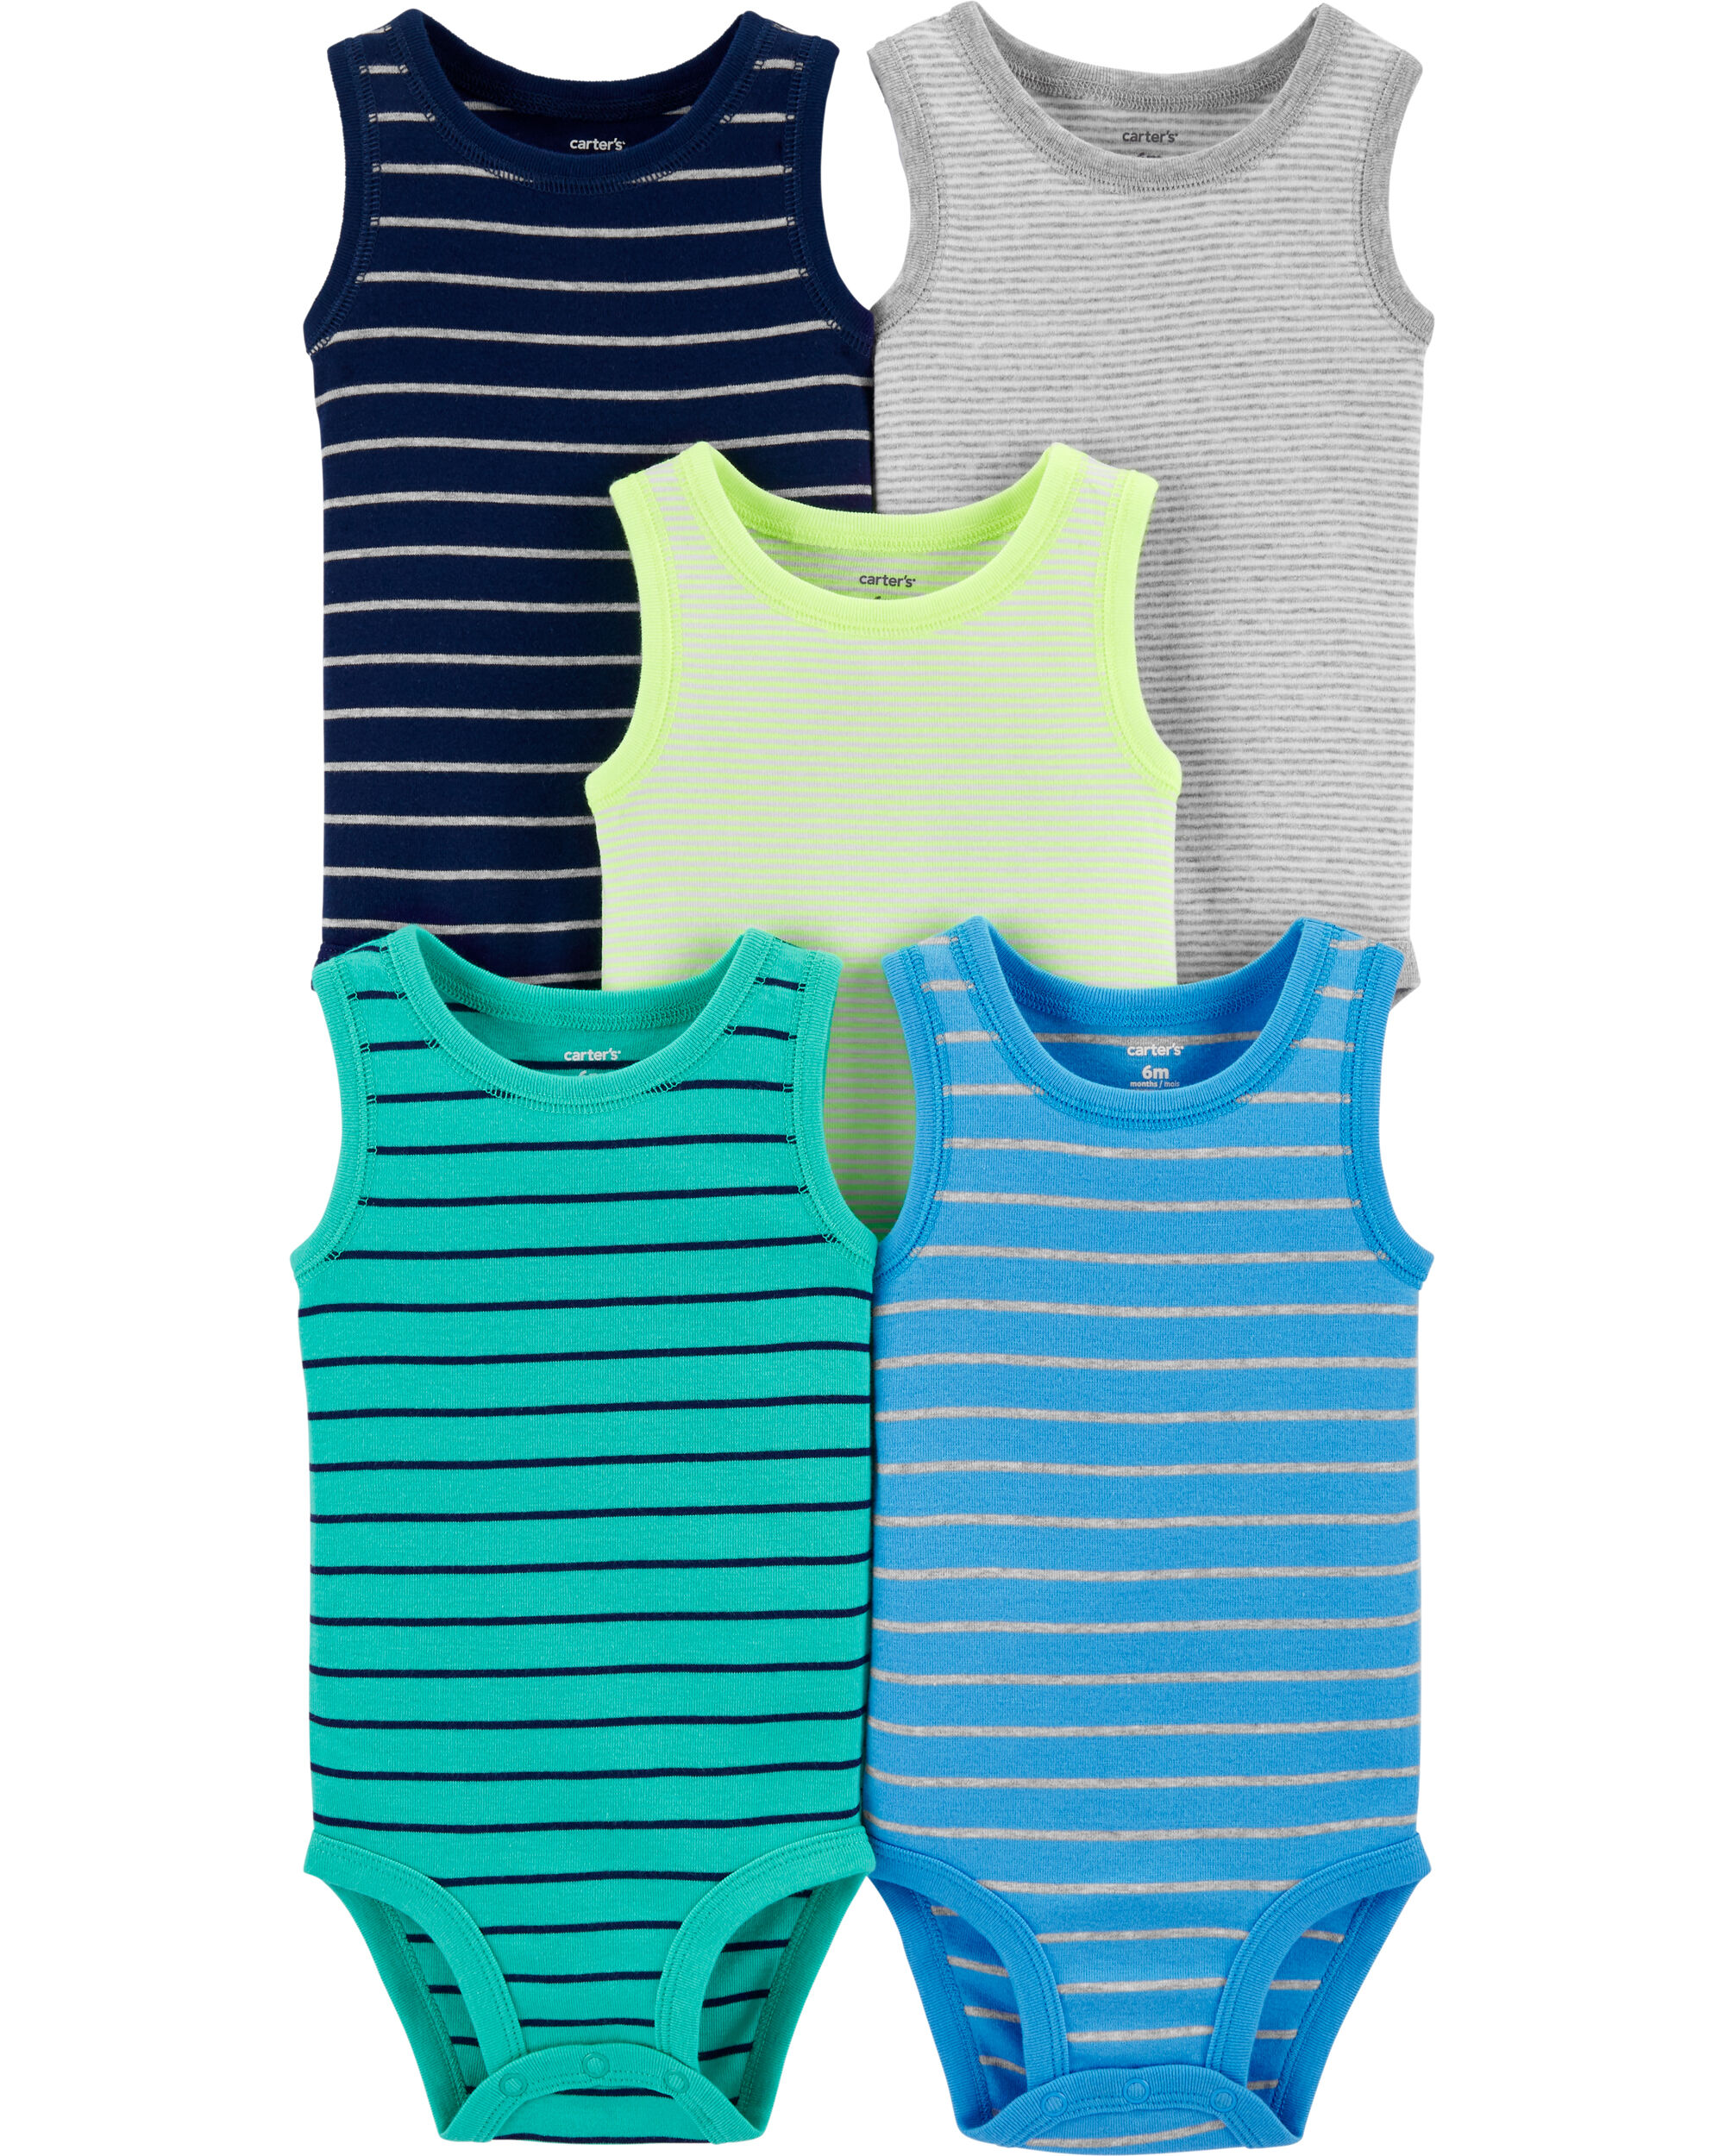 Sleeveless 3-Pack Care Baby Boys Bodysuit Exclusive